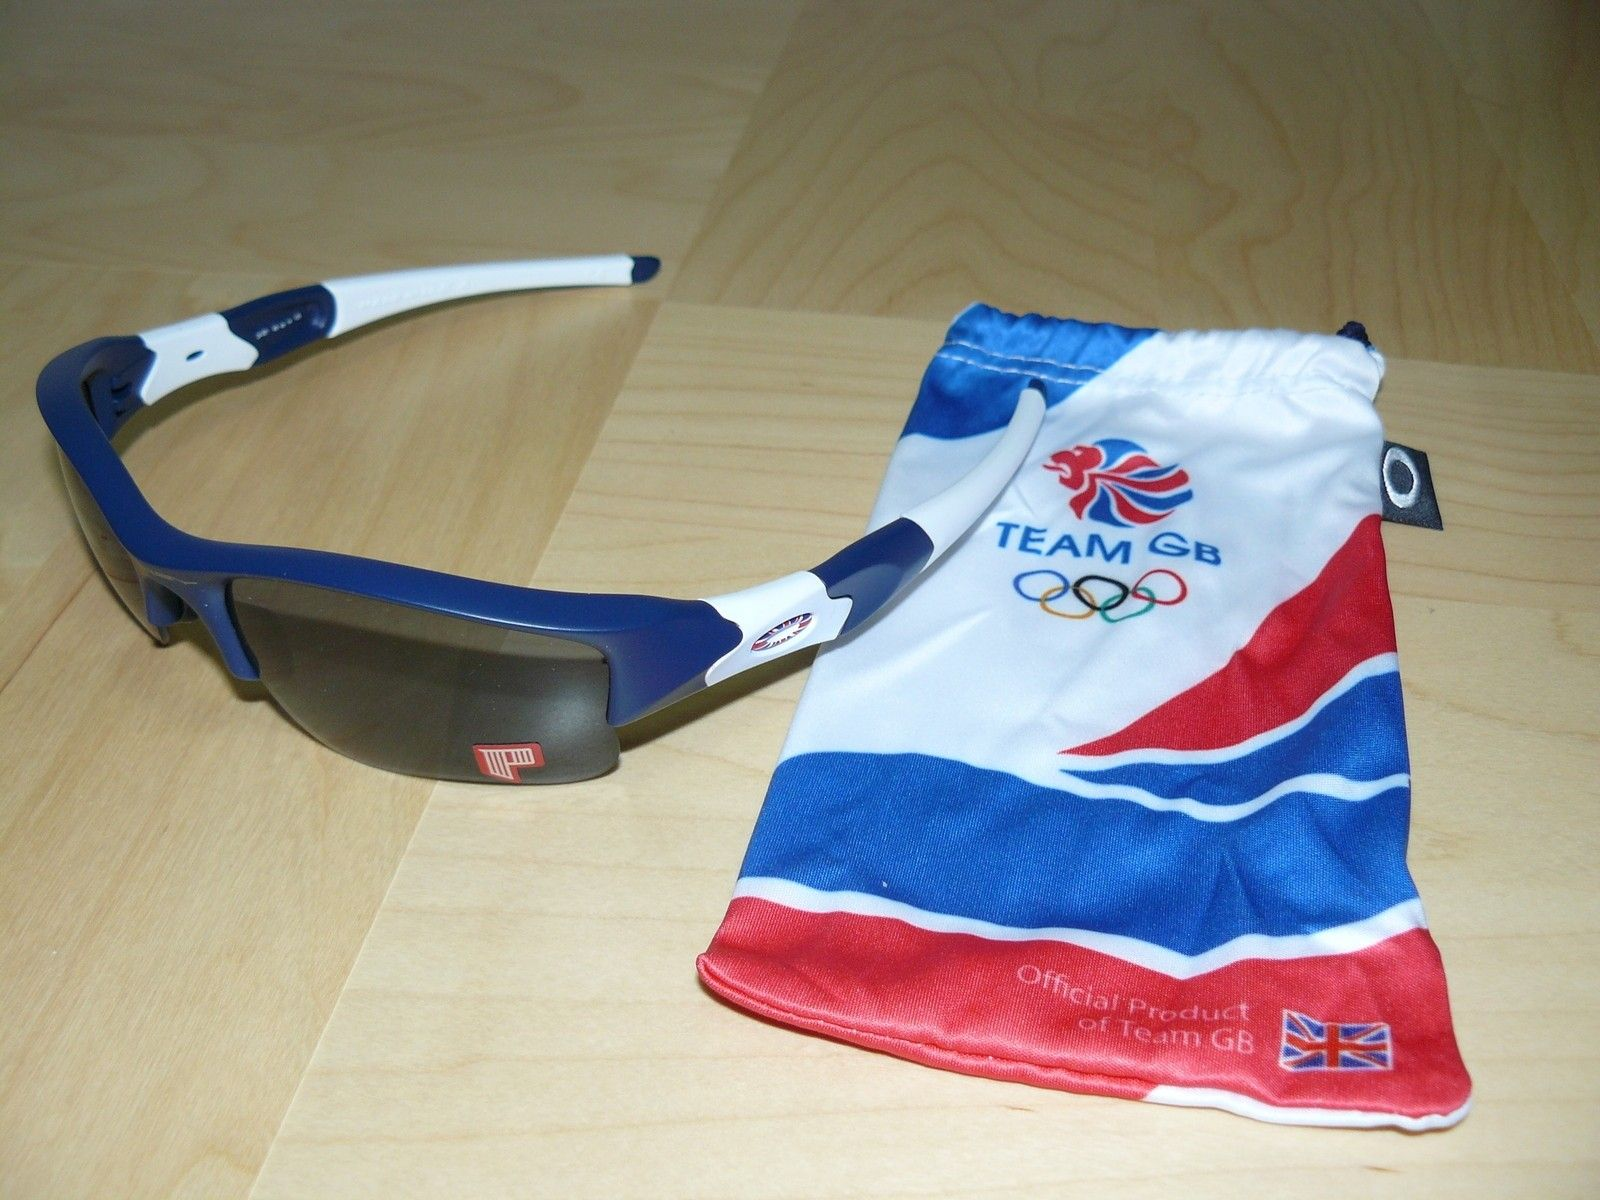 New Items in DOakley's collection - Team GB Flak.JPG